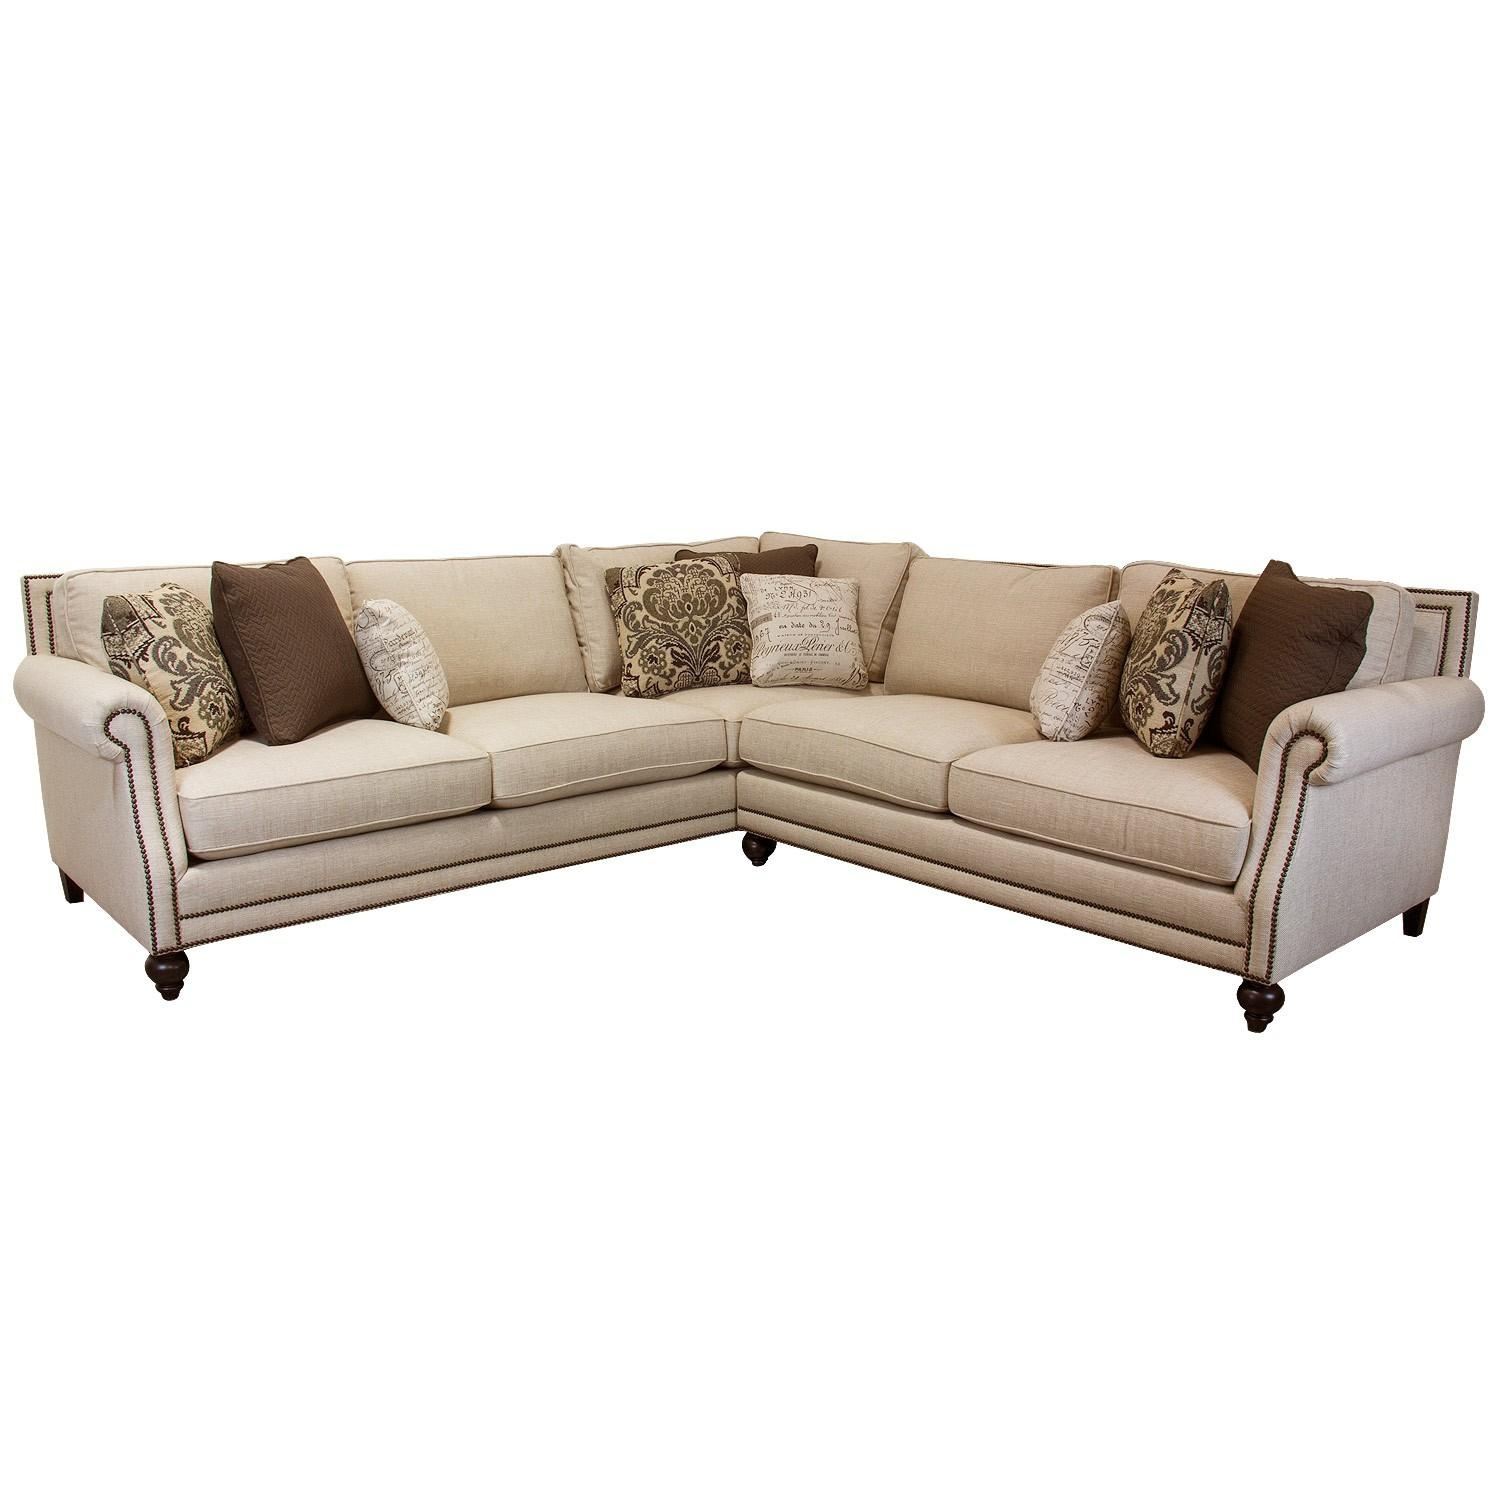 Bernhardt Brae Sectional In Bernhardt Brae Sofas (View 18 of 20)